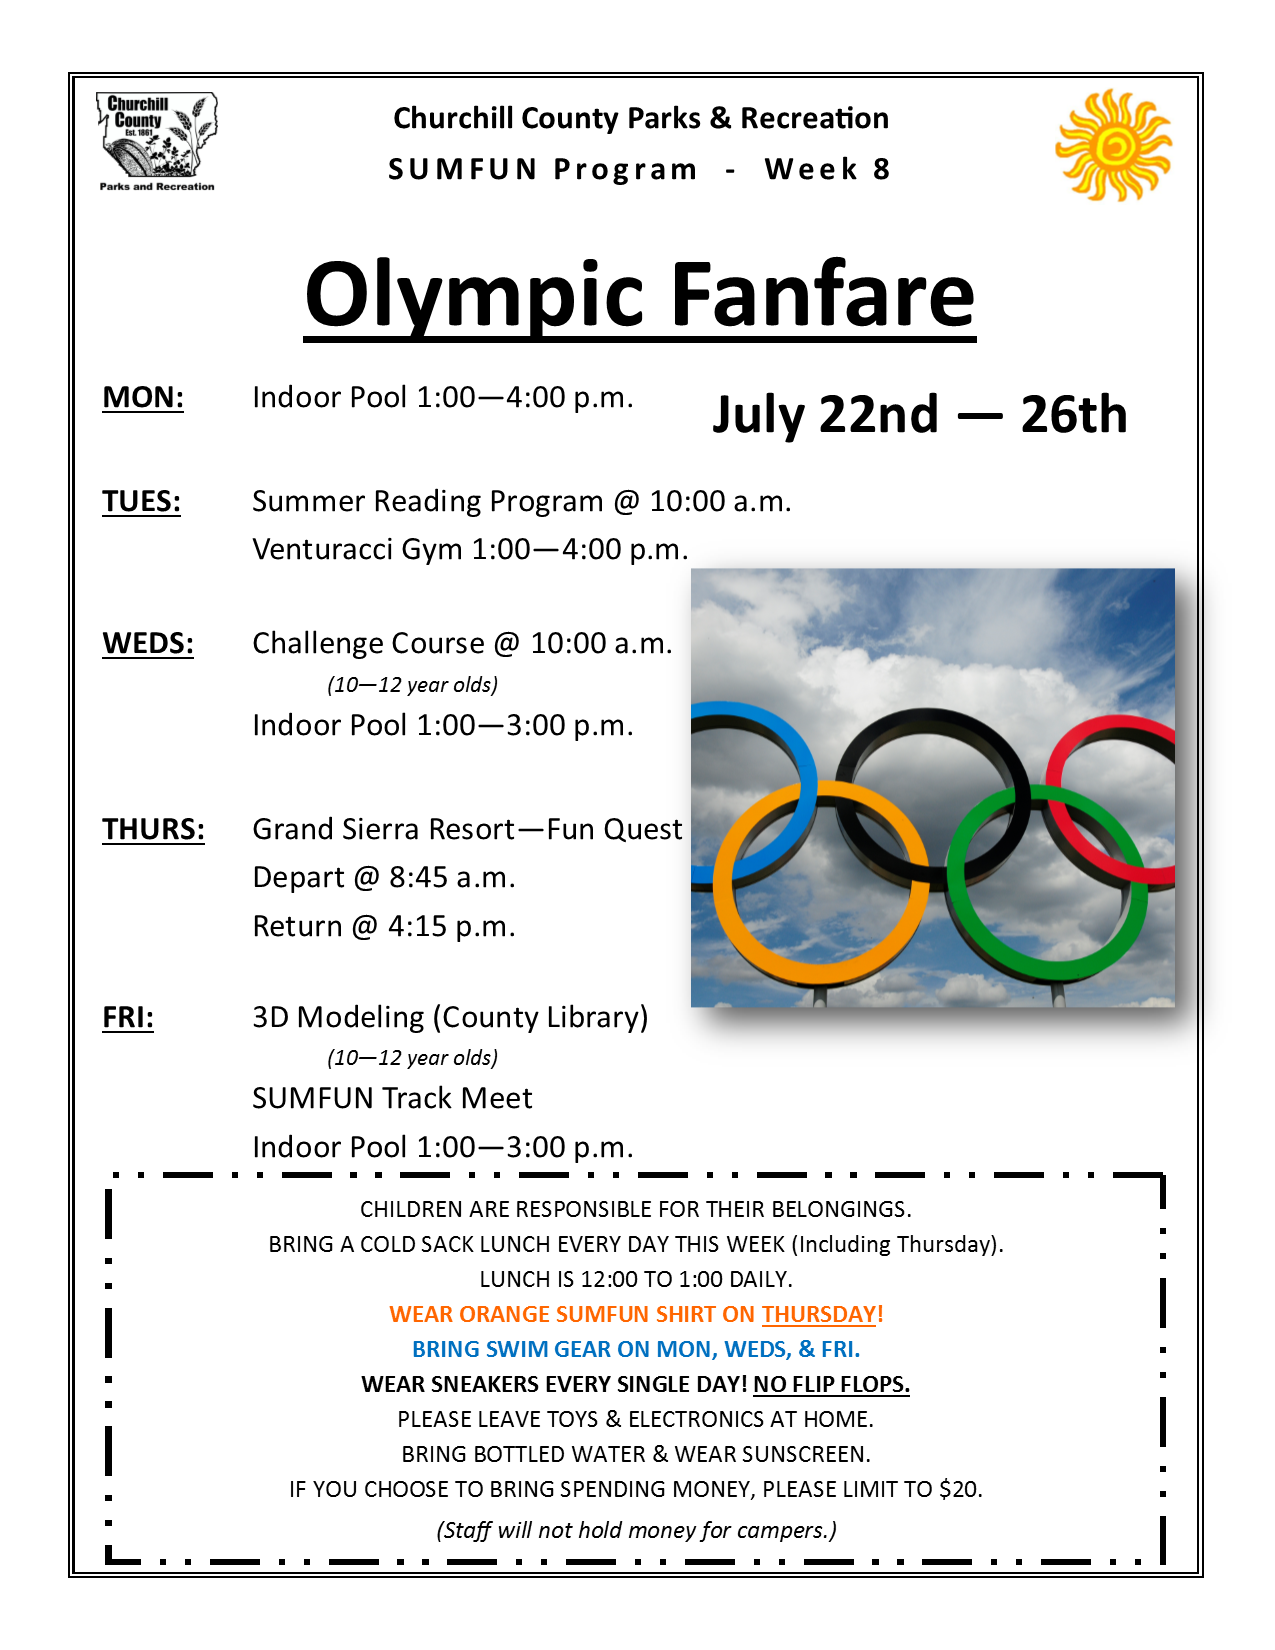 SUMFUN 2019 Flyer for Week 8